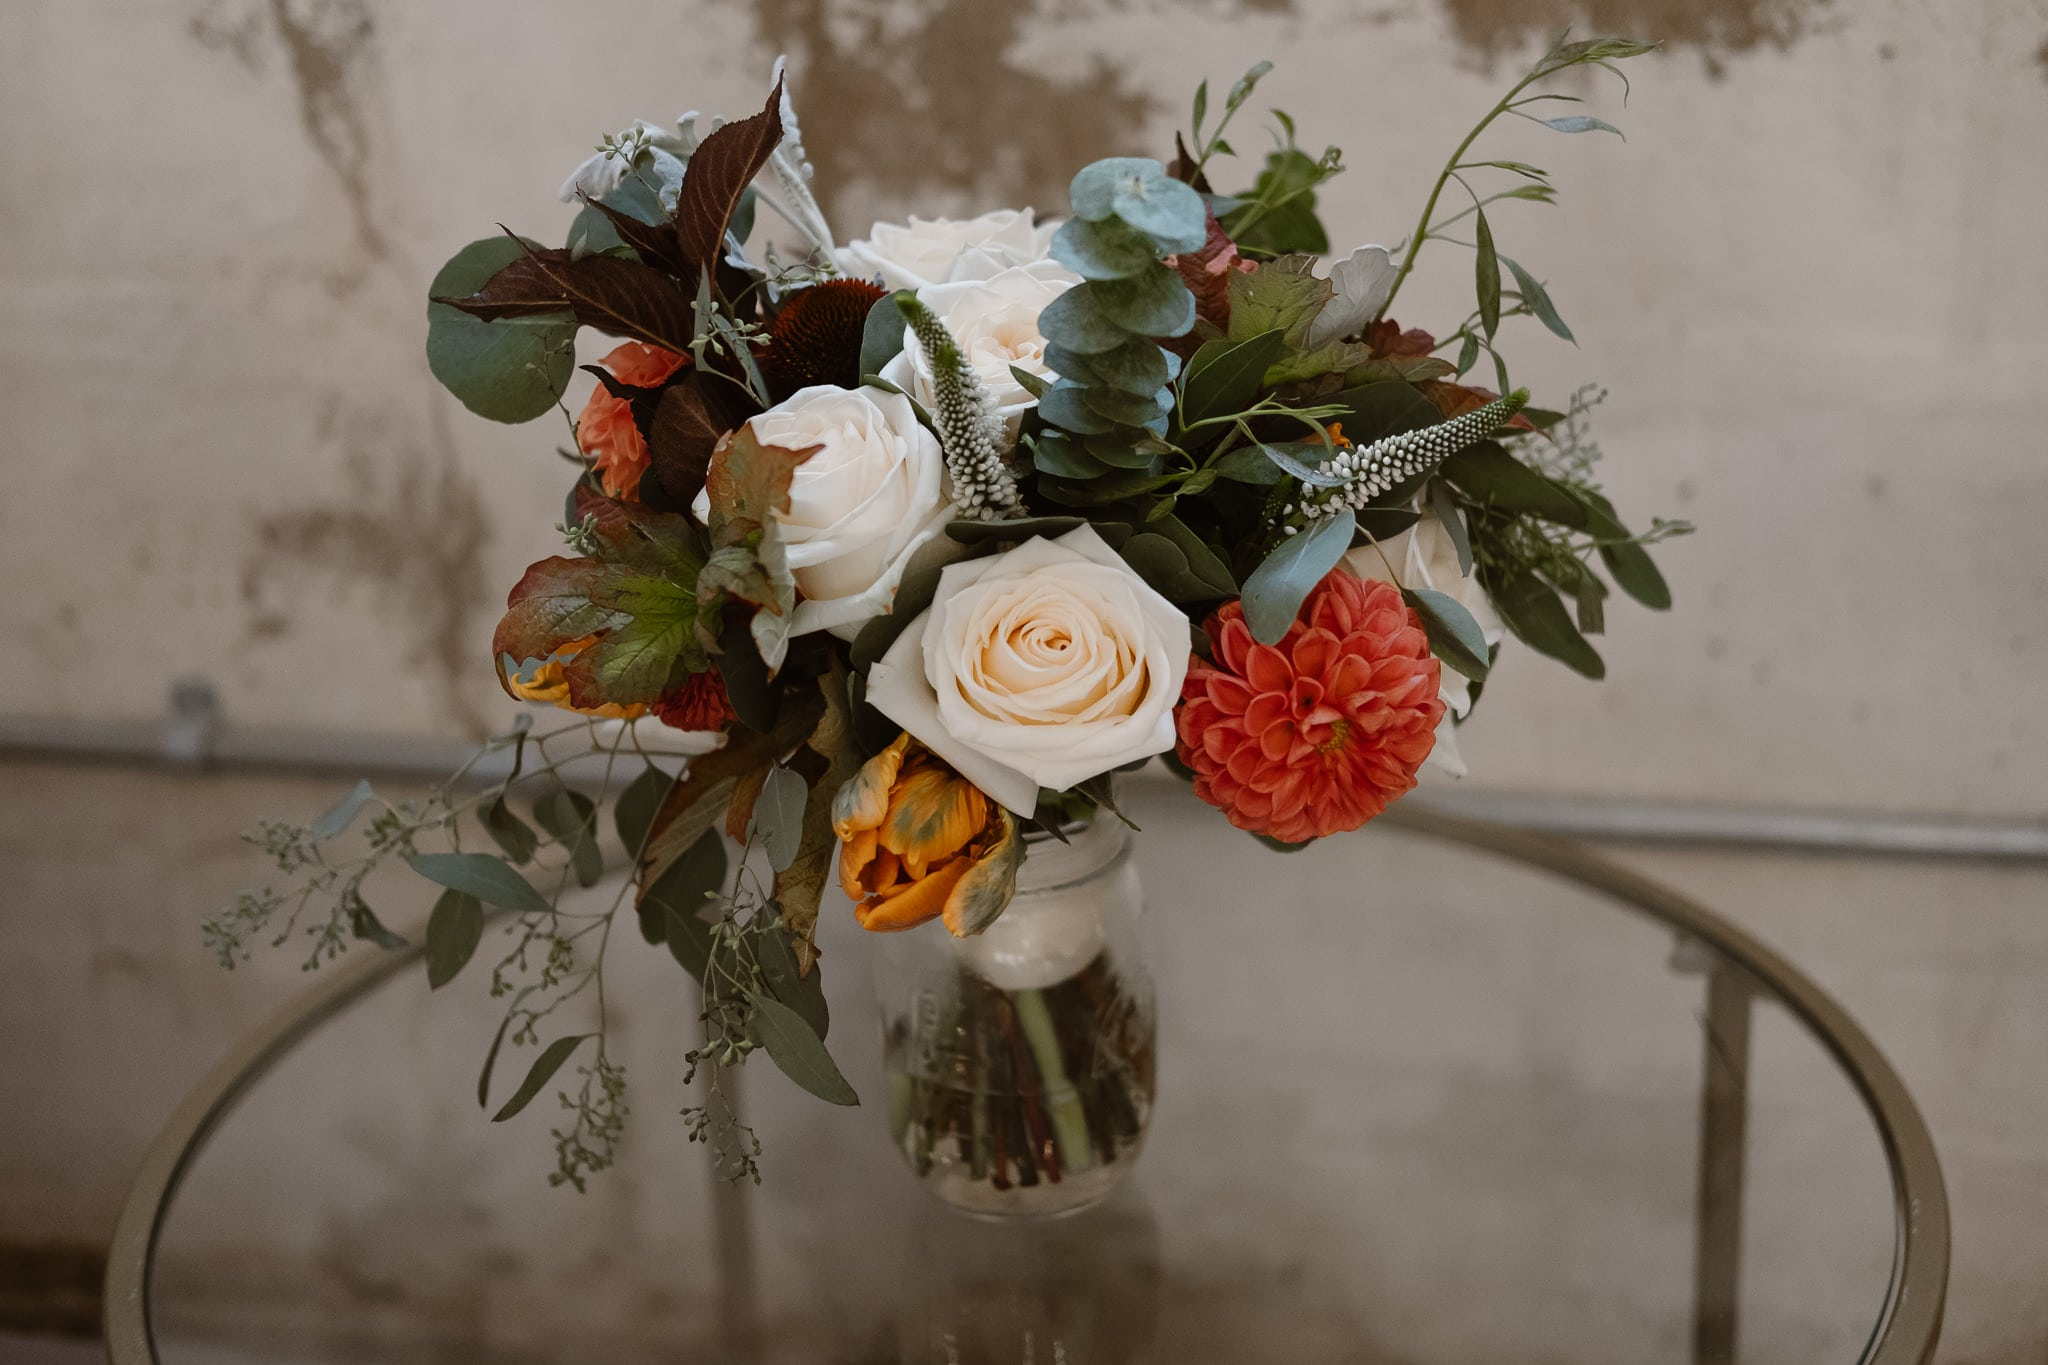 St Vrain Wedding Photographer | Longmont Wedding Photographer | Colorado Winter Wedding Photographer, Colorado industrial chic wedding, bride's bouquet